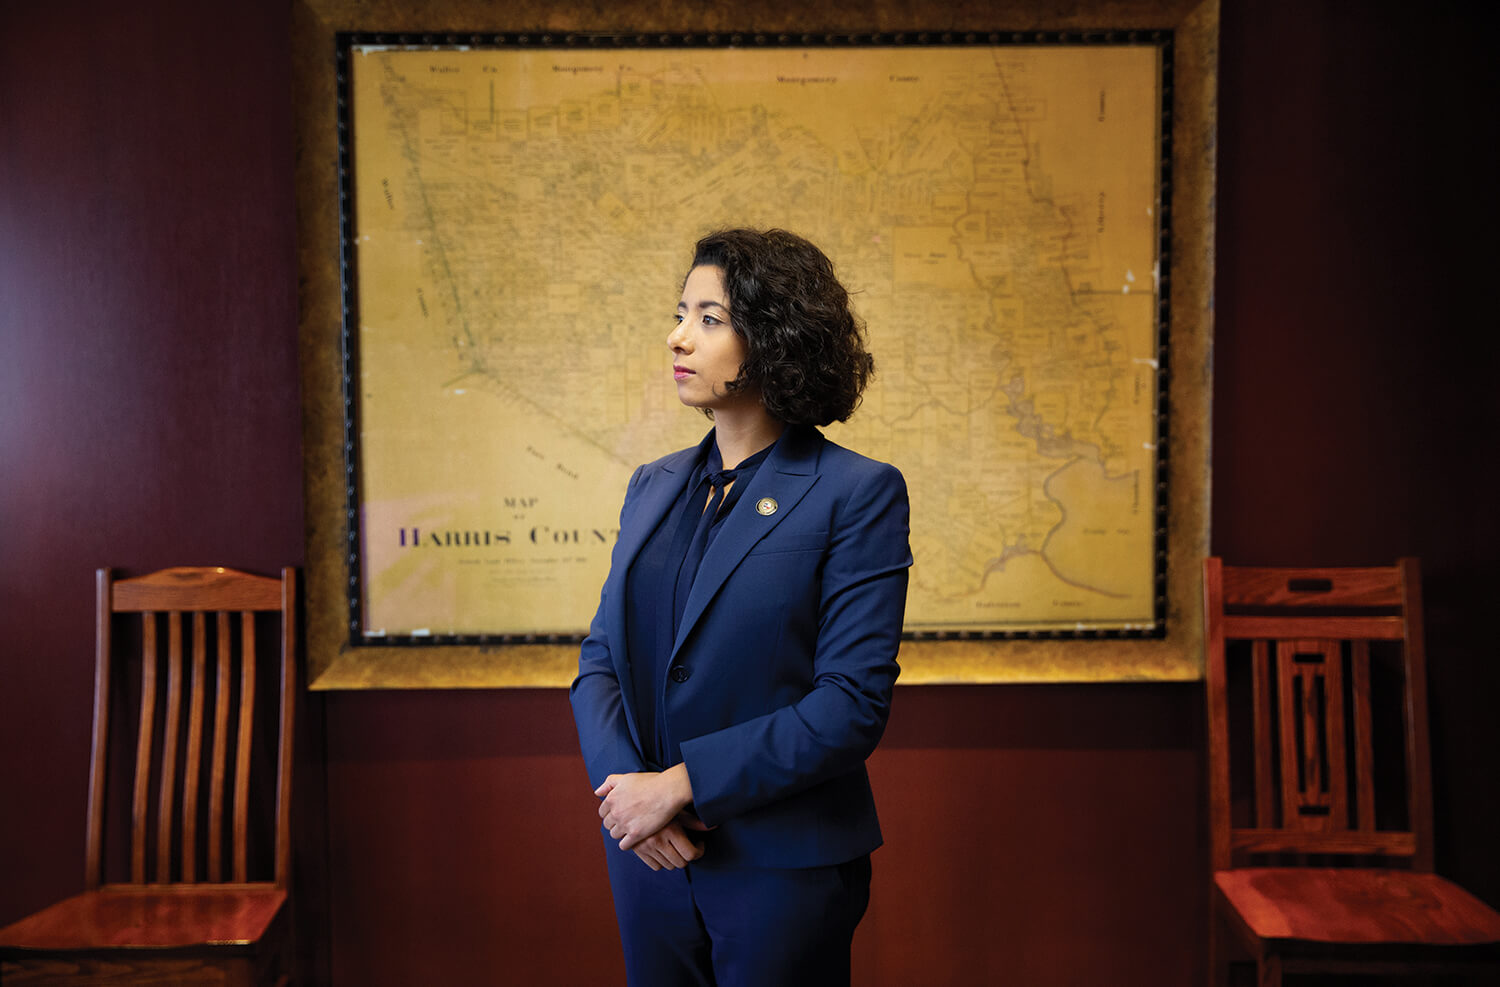 Harris County Judge Lina Hidalgo poses in her office before a historic map of the county she leads. Photo by Cody Duty.